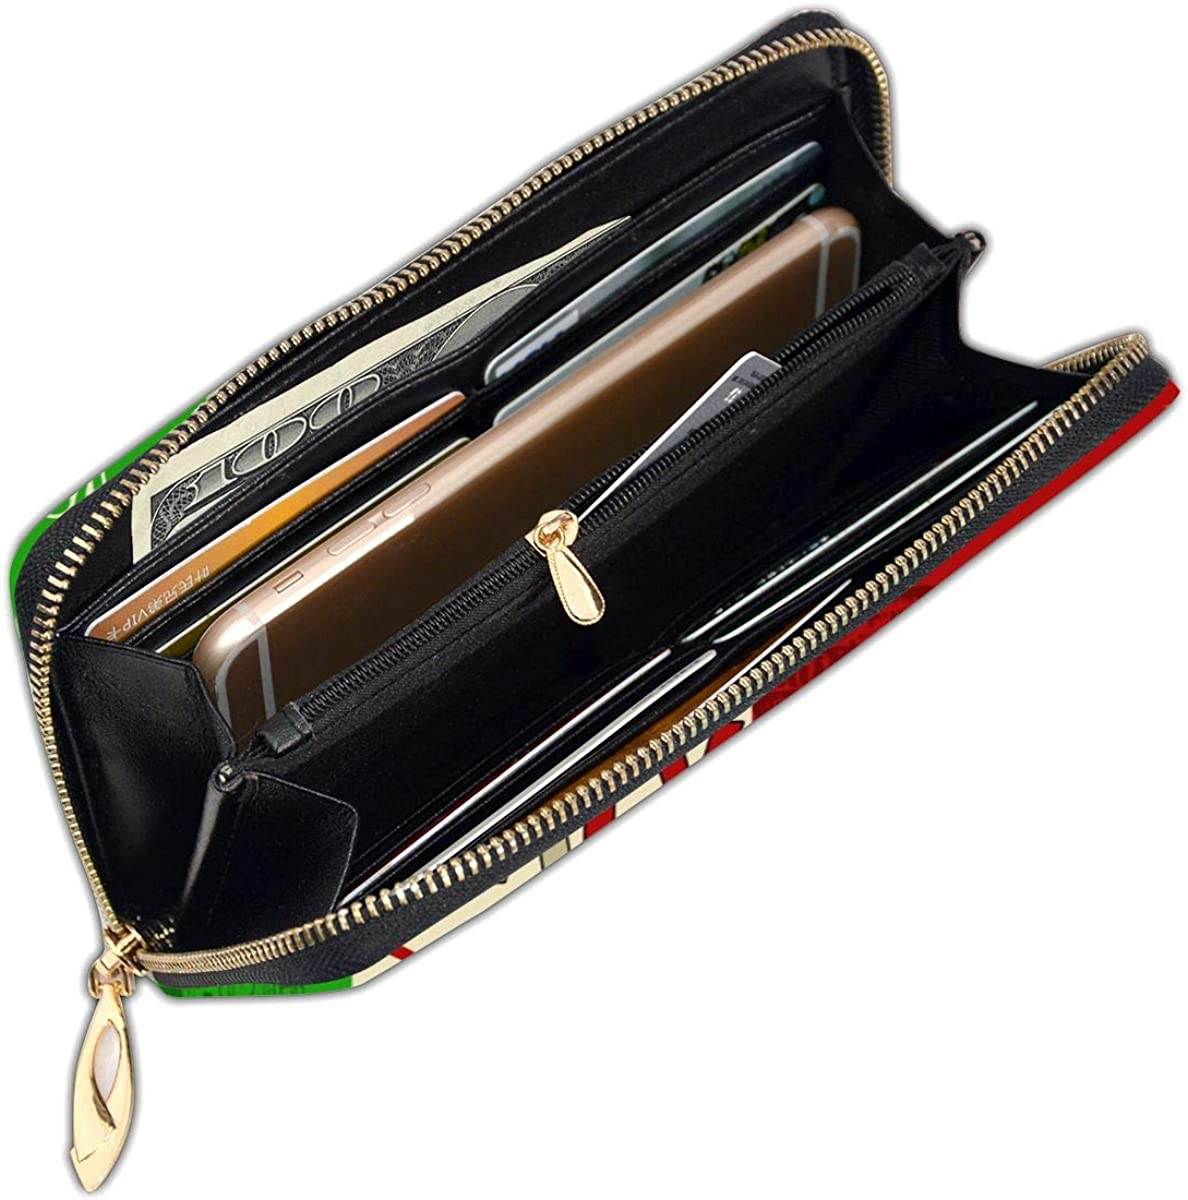 Italy Pizza Womens Genuine Leather Wallet Zip Around Wallet Clutch Wallet Coin Purse